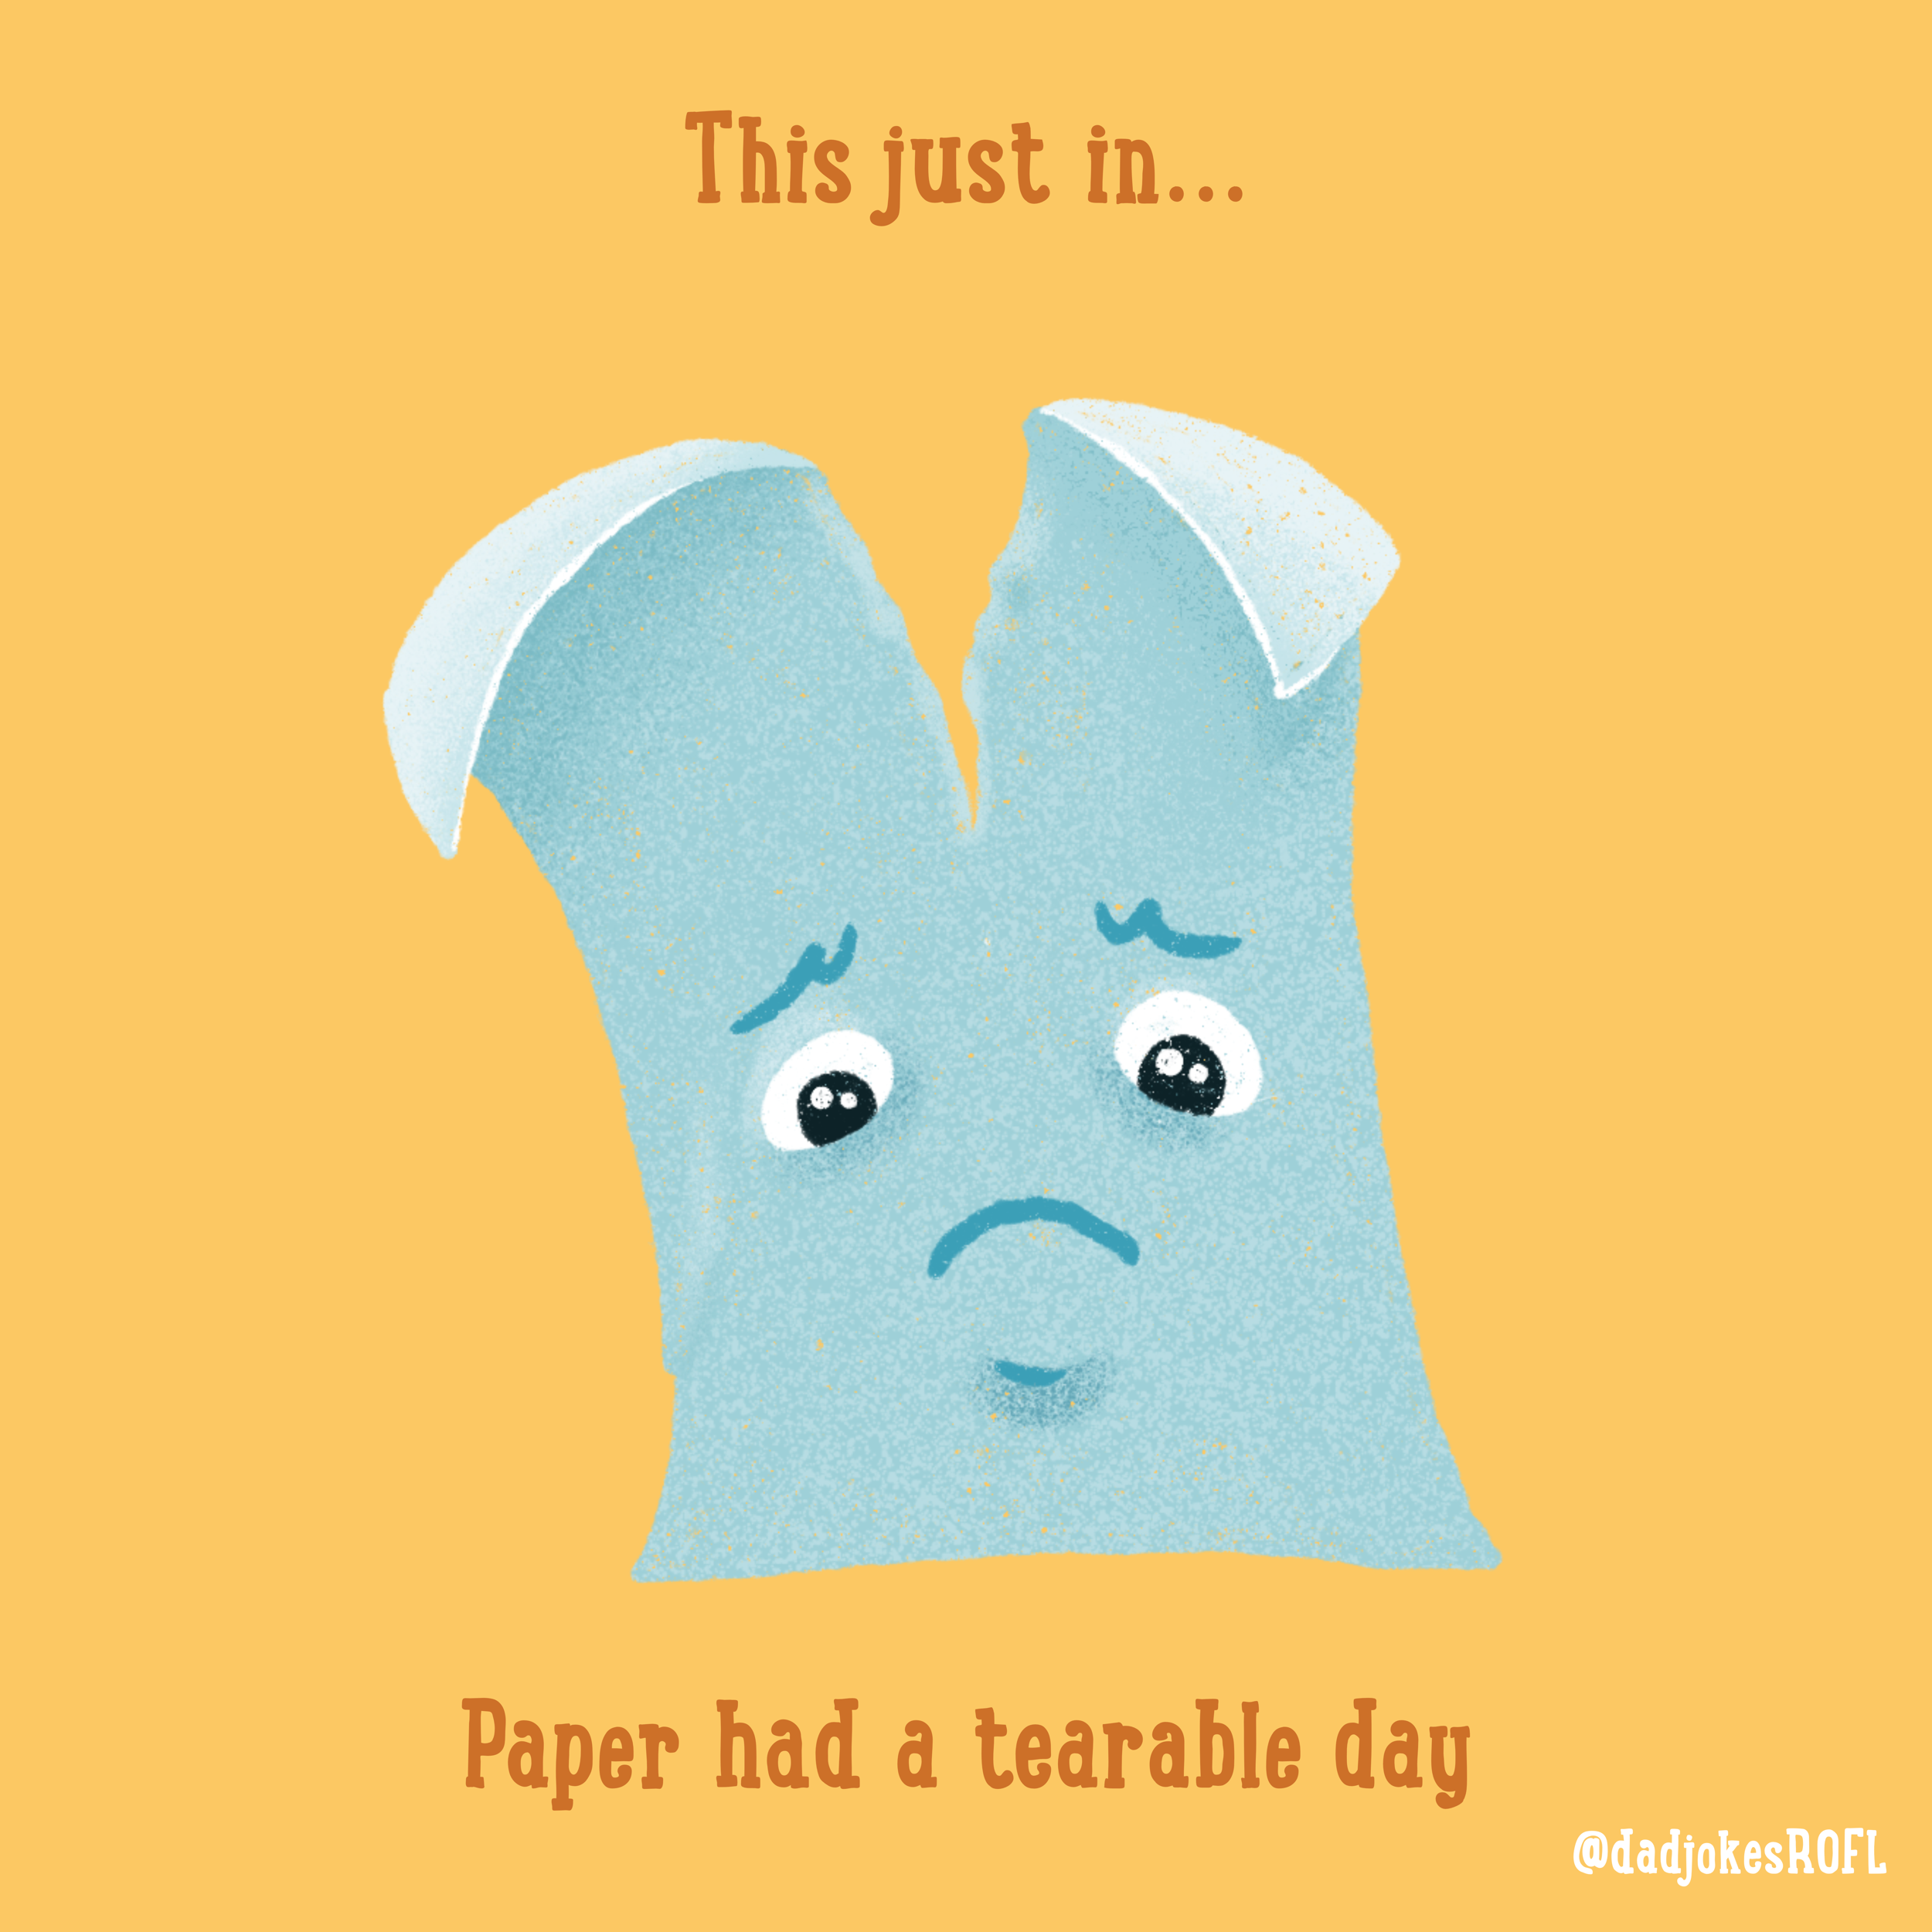 This just in... Paper has a tearable day